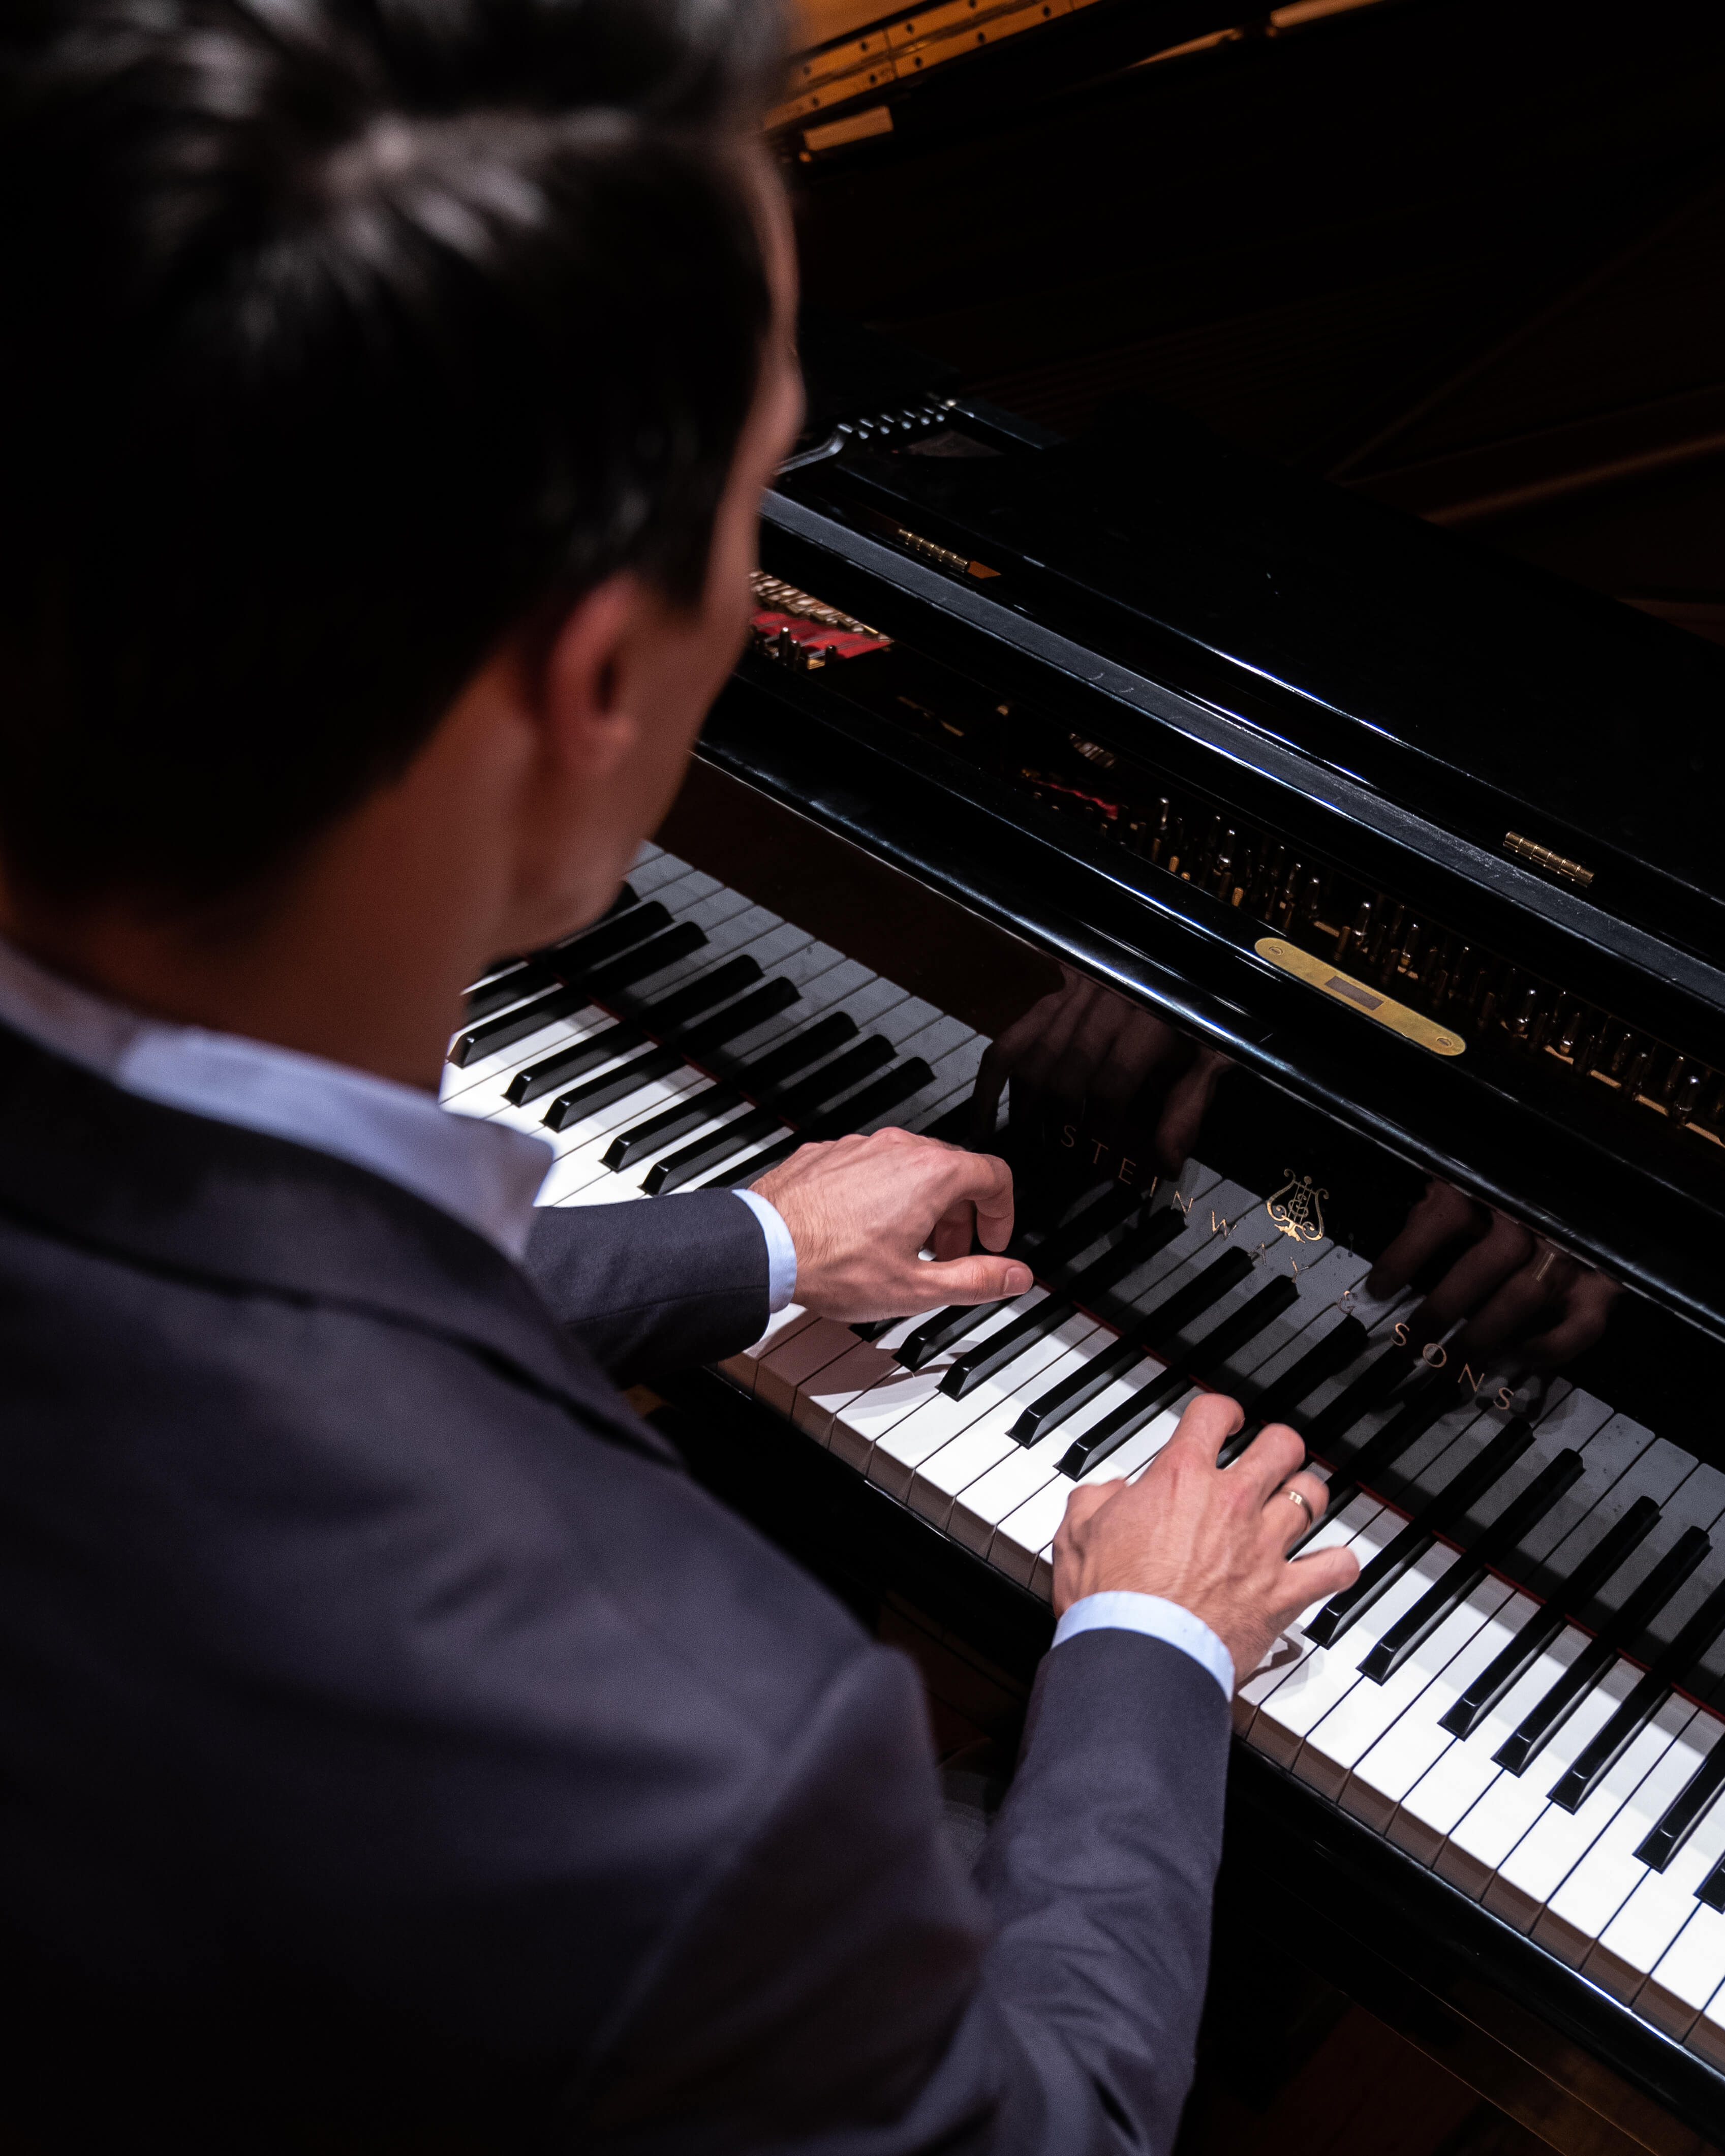 A Steinway Grand being played by a virtuoso pianist.